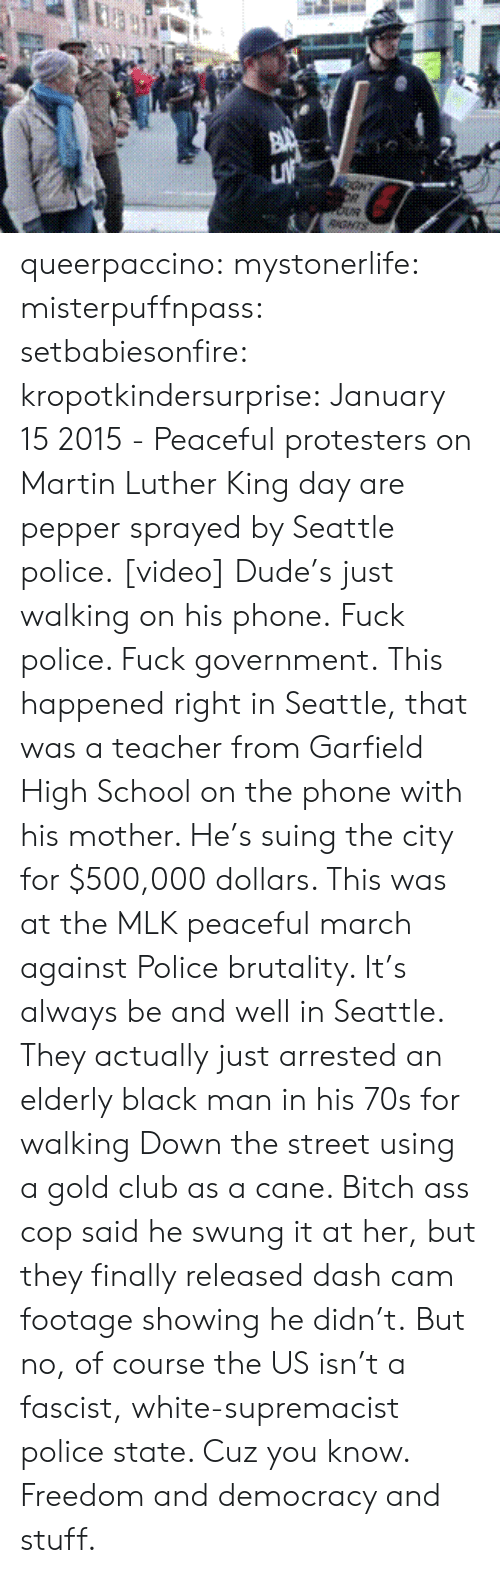 Ght: GHT  RGNTS queerpaccino: mystonerlife:  misterpuffnpass:  setbabiesonfire:  kropotkindersurprise: January 15 2015 - Peaceful protesters on Martin Luther King day are pepper sprayed by Seattle police. [video] Dude's just walking on his phone.  Fuck police. Fuck government.  This happened right in Seattle, that was a teacher from Garfield High School on the phone with his mother. He's suing the city for $500,000 dollars. This was at the MLK peaceful march against Police brutality. It's always be and well in Seattle. They actually just arrested an elderly black man in his 70s for walking Down the street using a gold club as a cane. Bitch ass cop said he swung it at her, but they finally released dash cam footage showing he didn't.  But no, of course the US isn't a fascist, white-supremacist police state. Cuz you know. Freedom and democracy and stuff.